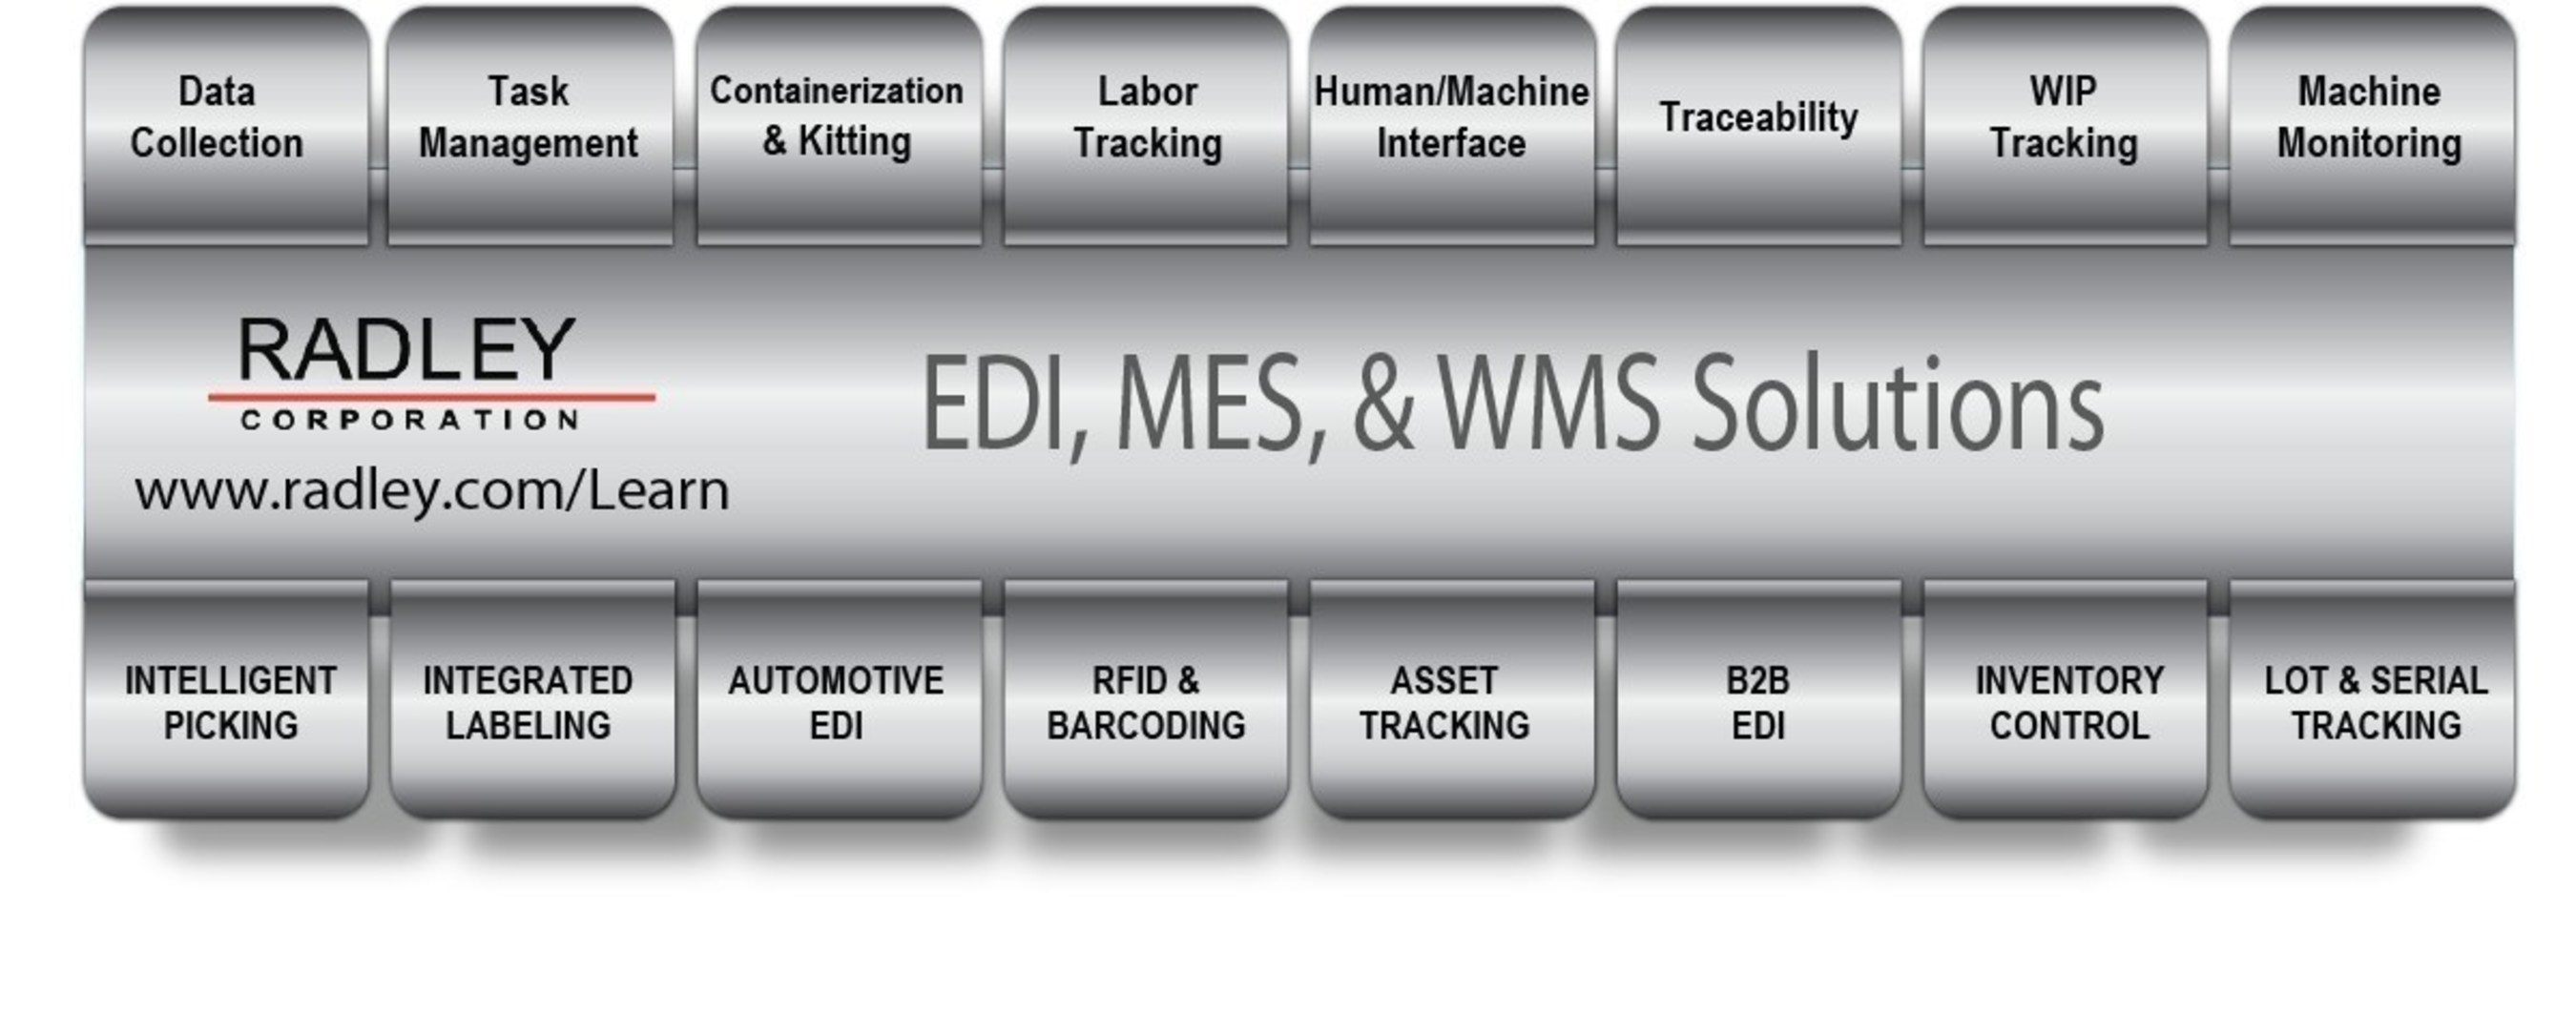 Radley's scalable technology platform of EDI, Manufacturing and Warehouse solutions integrate with major ERP and Business Systems and can be installed directly on your Honeywell/Intermec mobile computer and equipment. Our software allows you to perform tasks in real-time, off-line or batch mode to accommodate network range, security and unique processes. Purchase software and Honeywell hardware from Radley and you have one central vendor to contact for training, troubleshooting or support issues. With customers in over 33 countries, our consultants have the expertise to evaluate, recommend, install, configure and support your software & hardware needs whatever your industry or environment.